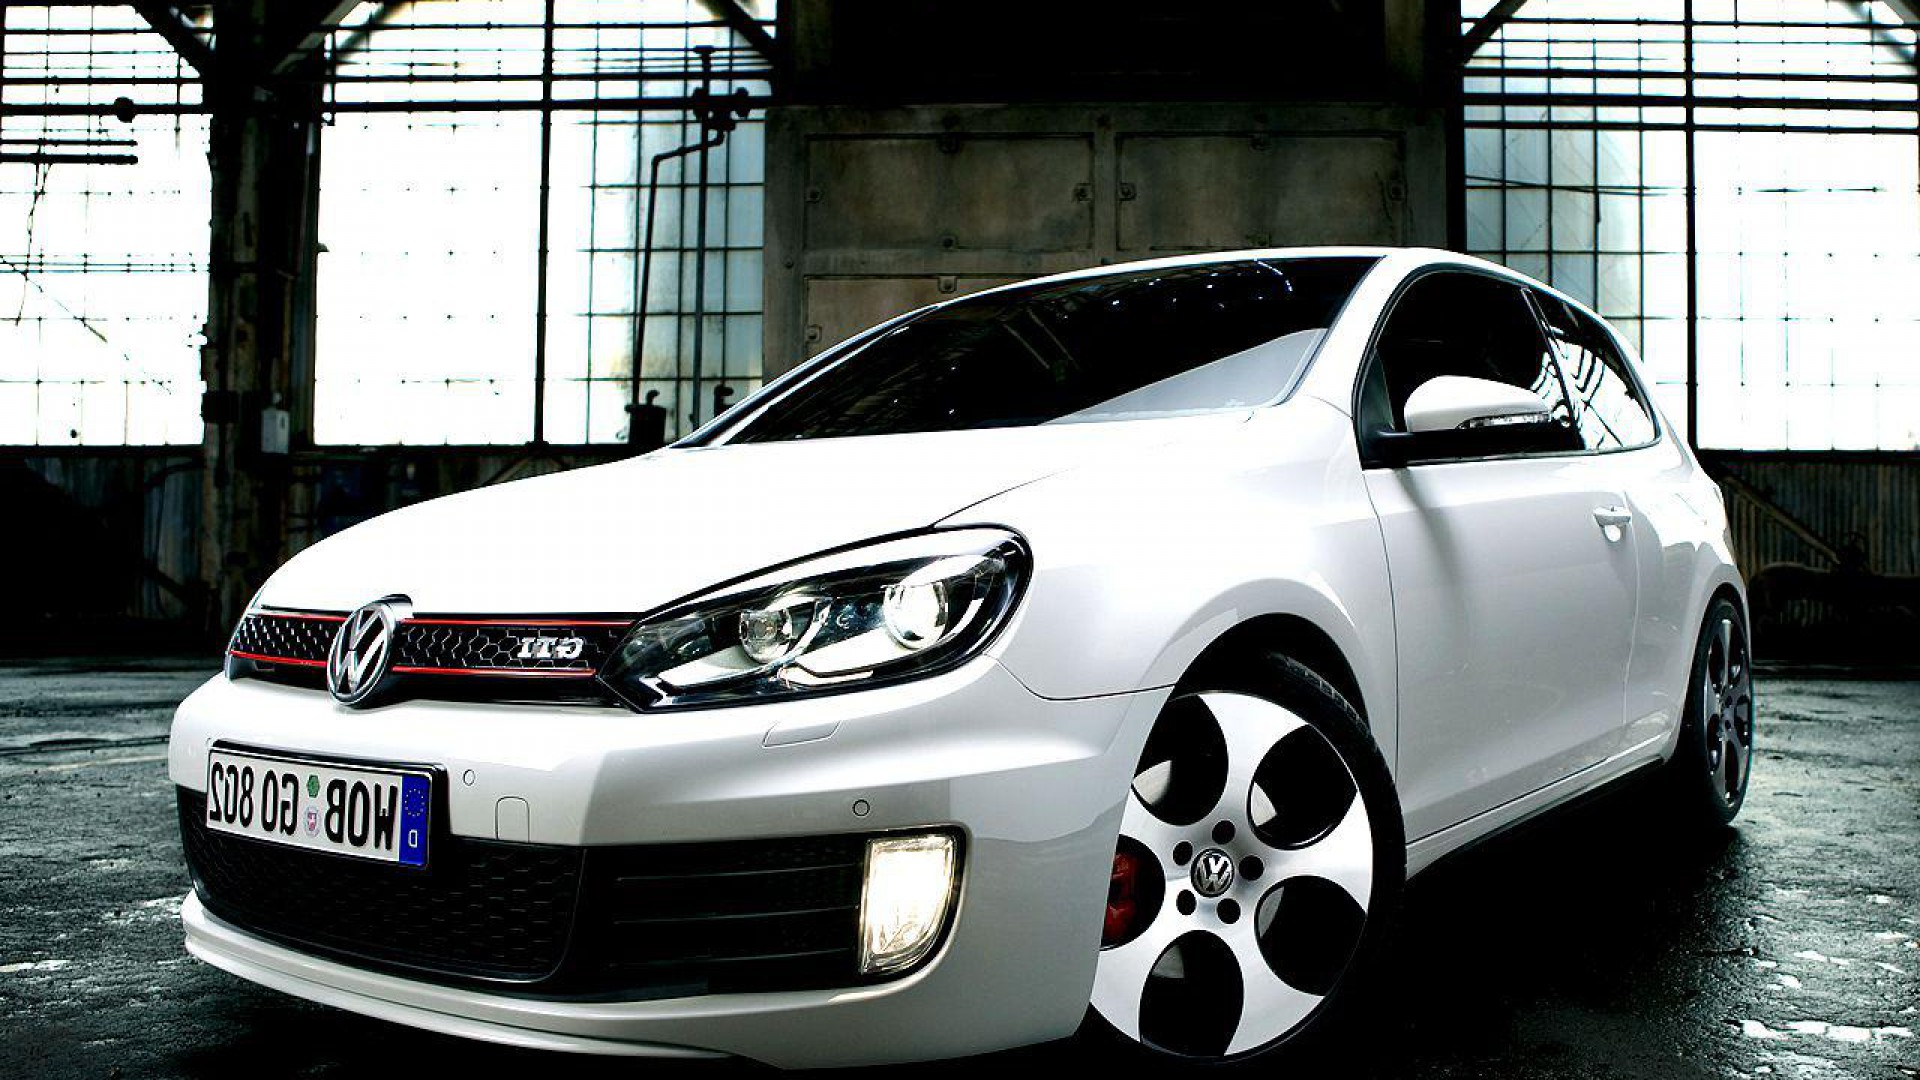 Golf_Gti_Wallpapers9